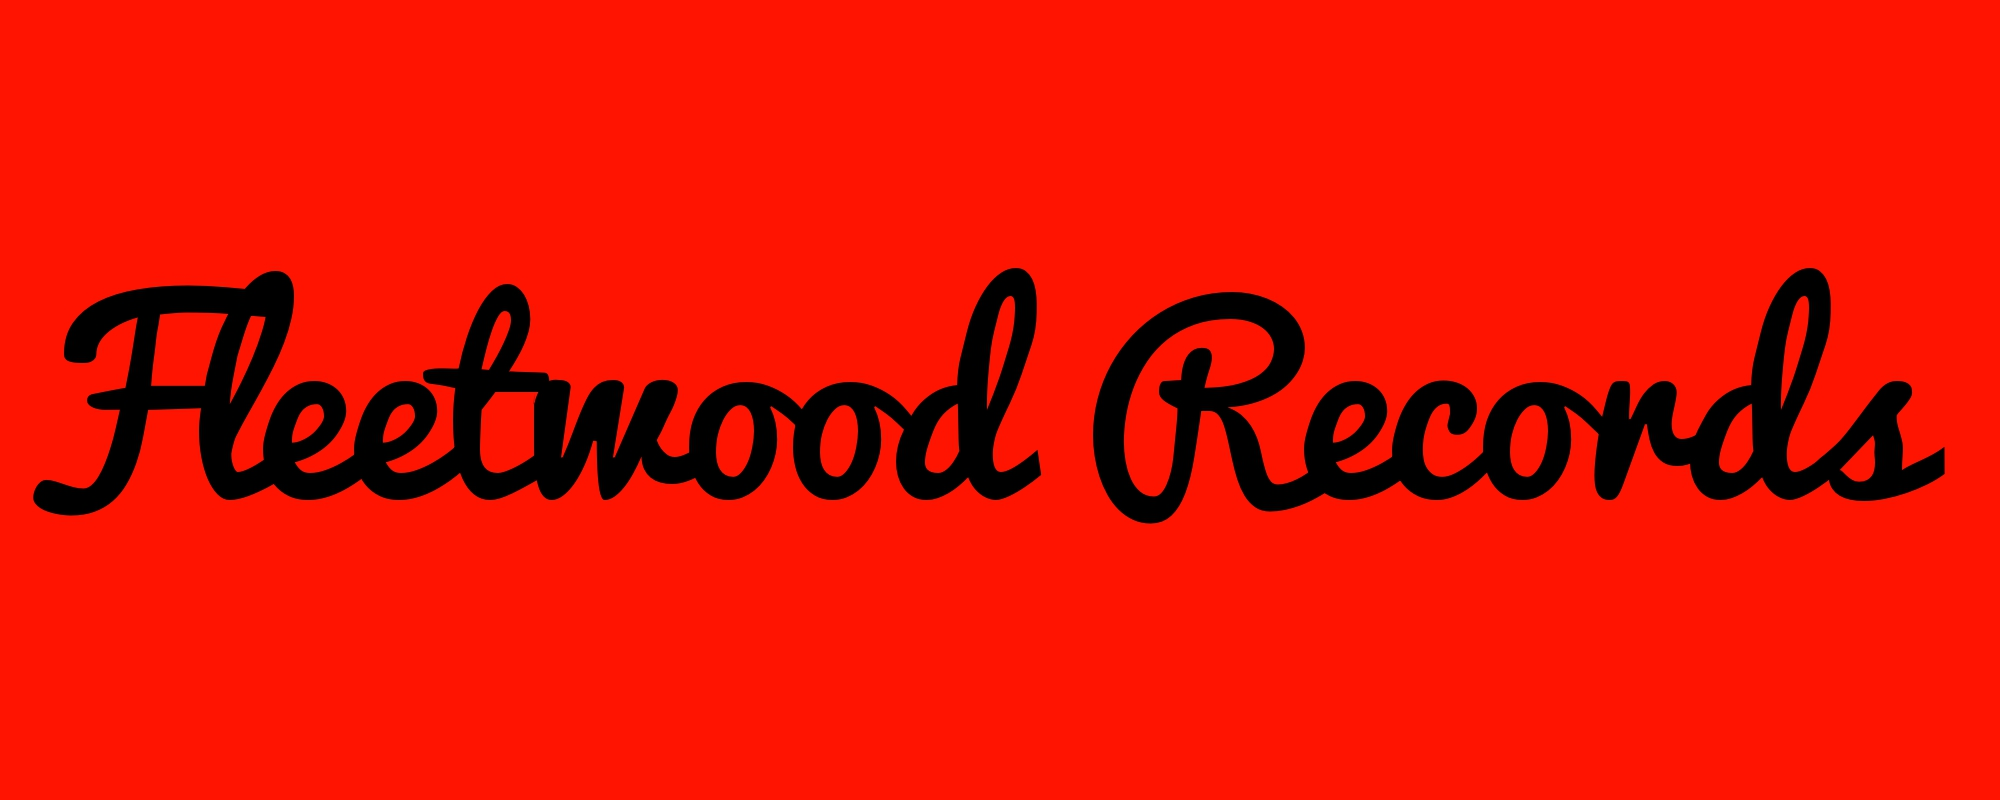 http://indiemusicpeople.com/Uploads/Fleetwood_Records_-_fleetwood.jpg